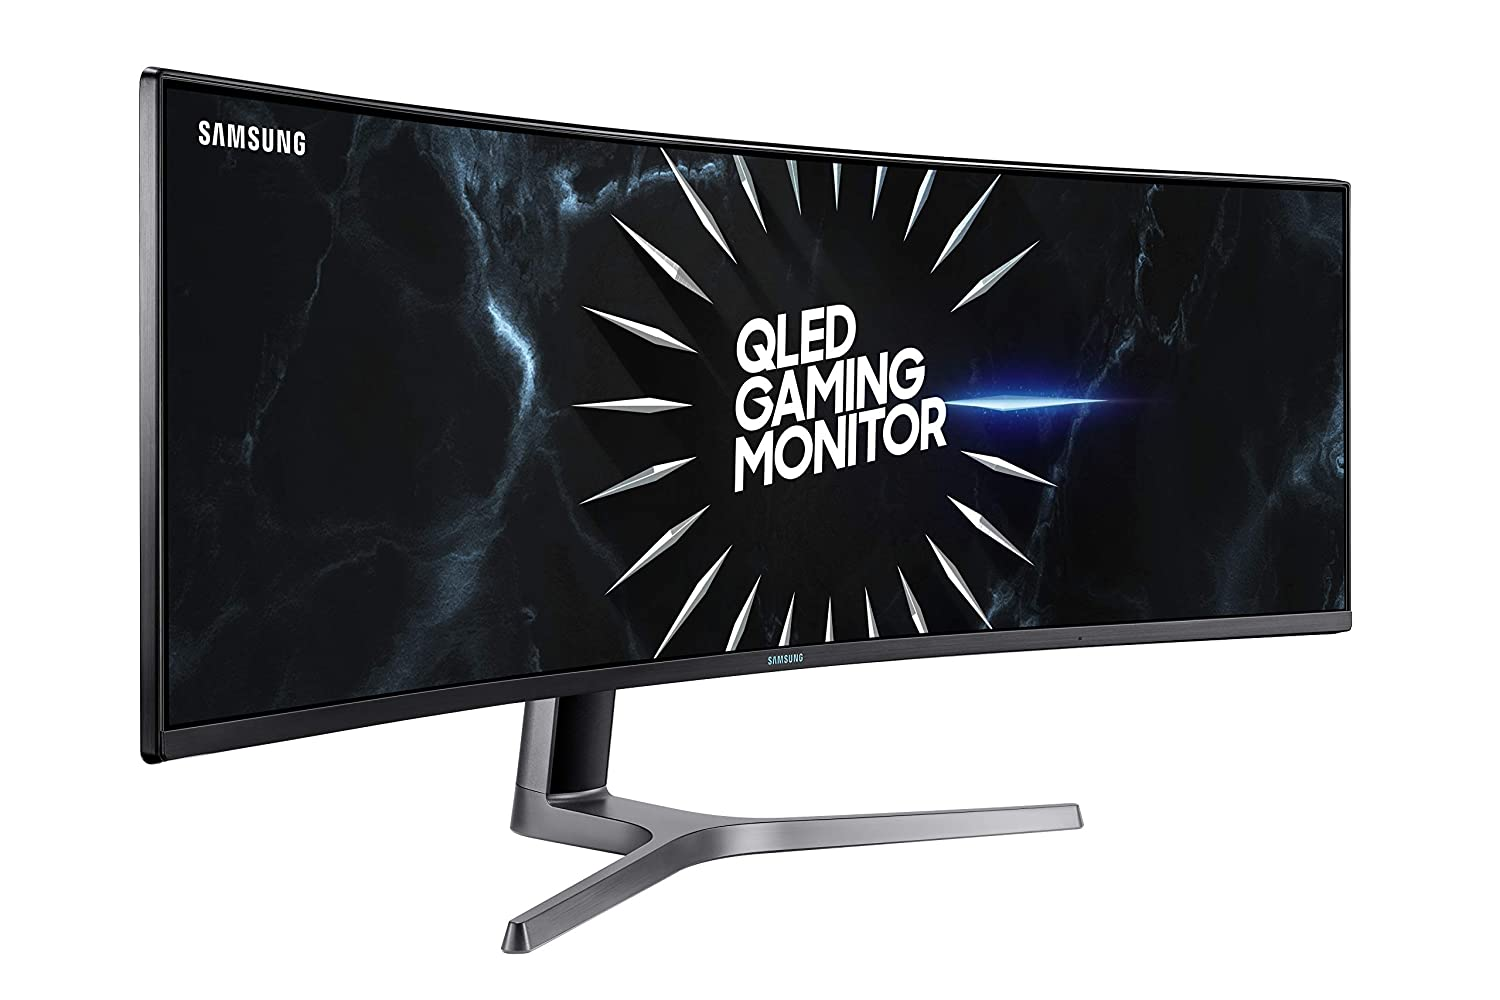 LC49RG90SSNXZA Samsung Double QHD CRG9 Series Curved 49-Inch Gaming Monitor Black